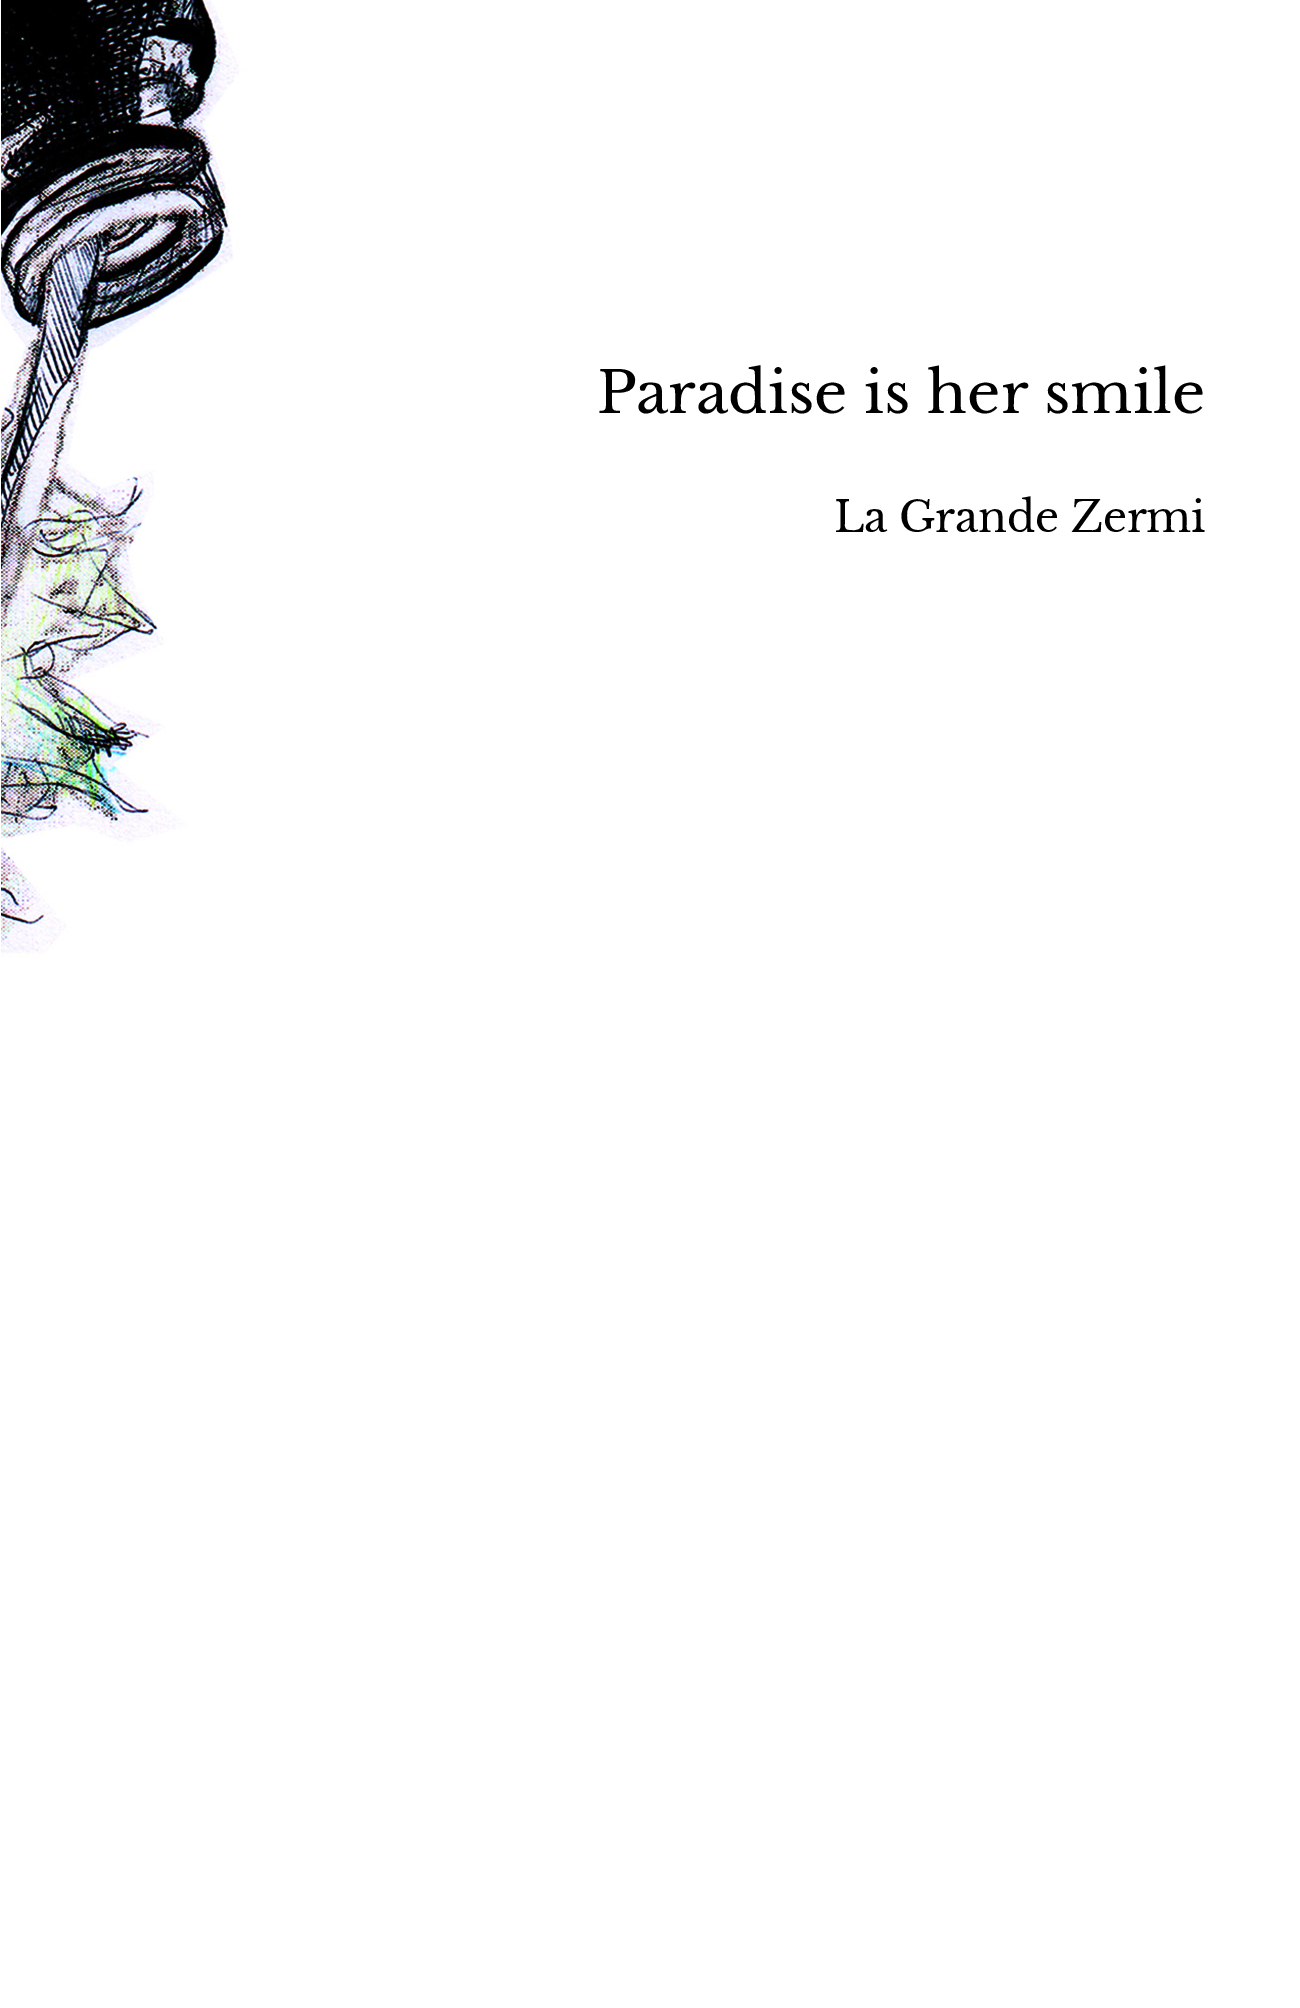 Paradise is her smile